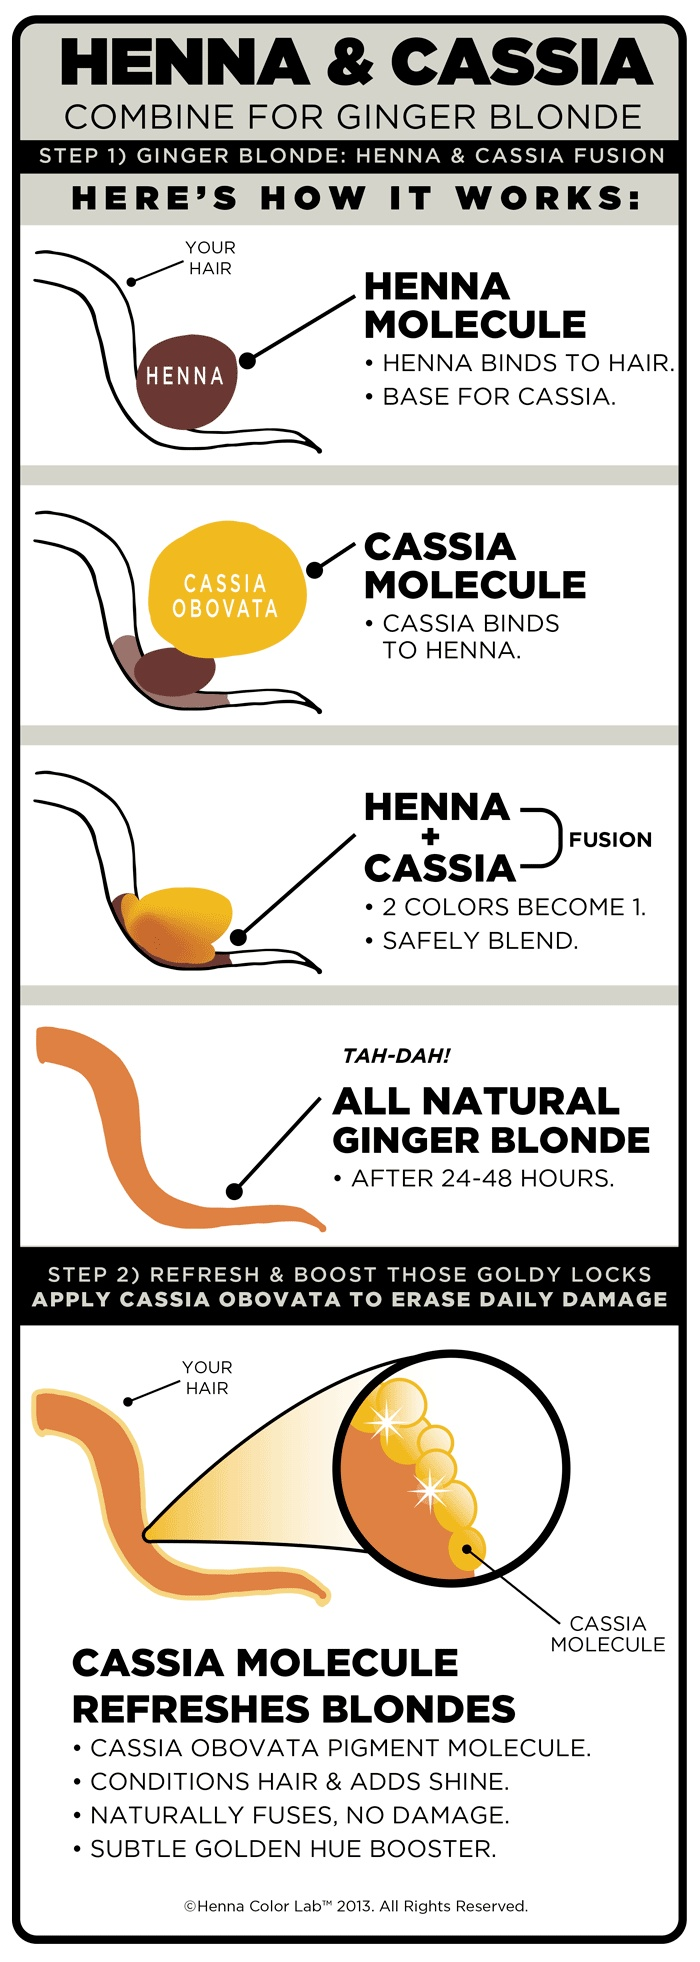 HCL™ Ginger-Blush: Henna & Cassia Blonde-Action!